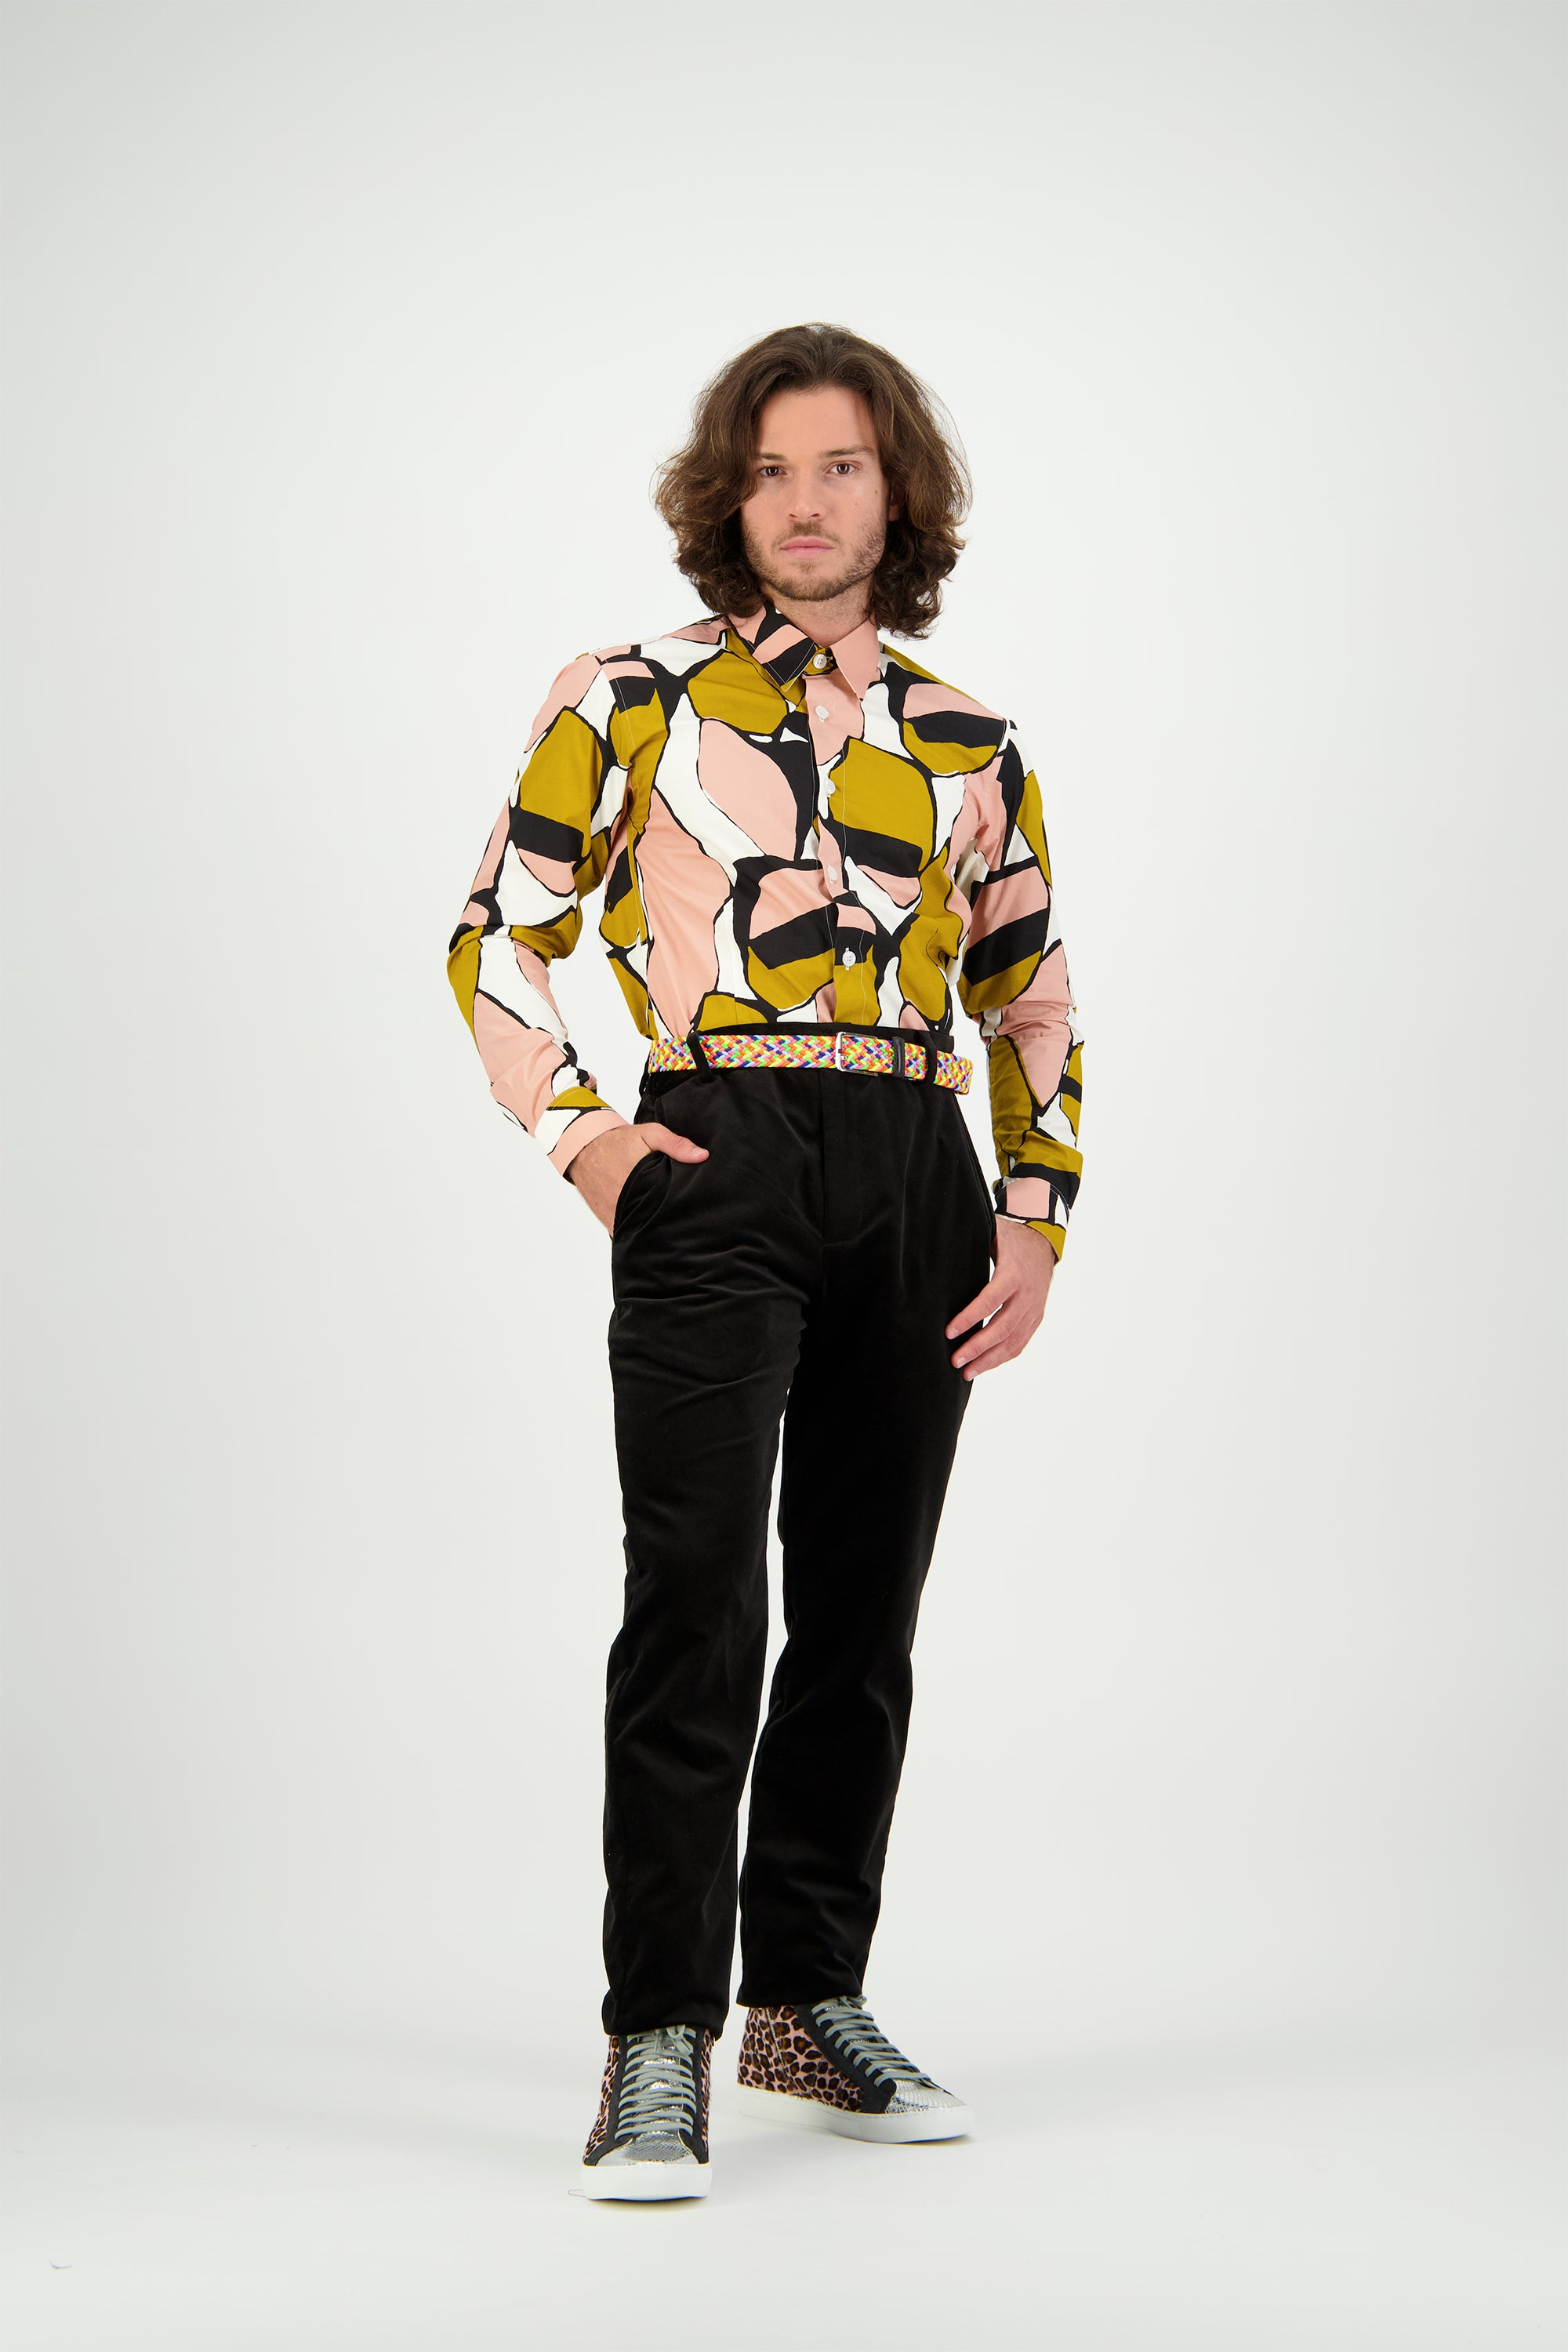 WORLDman 4721 Thurgood Shirt Peach Mustard Black